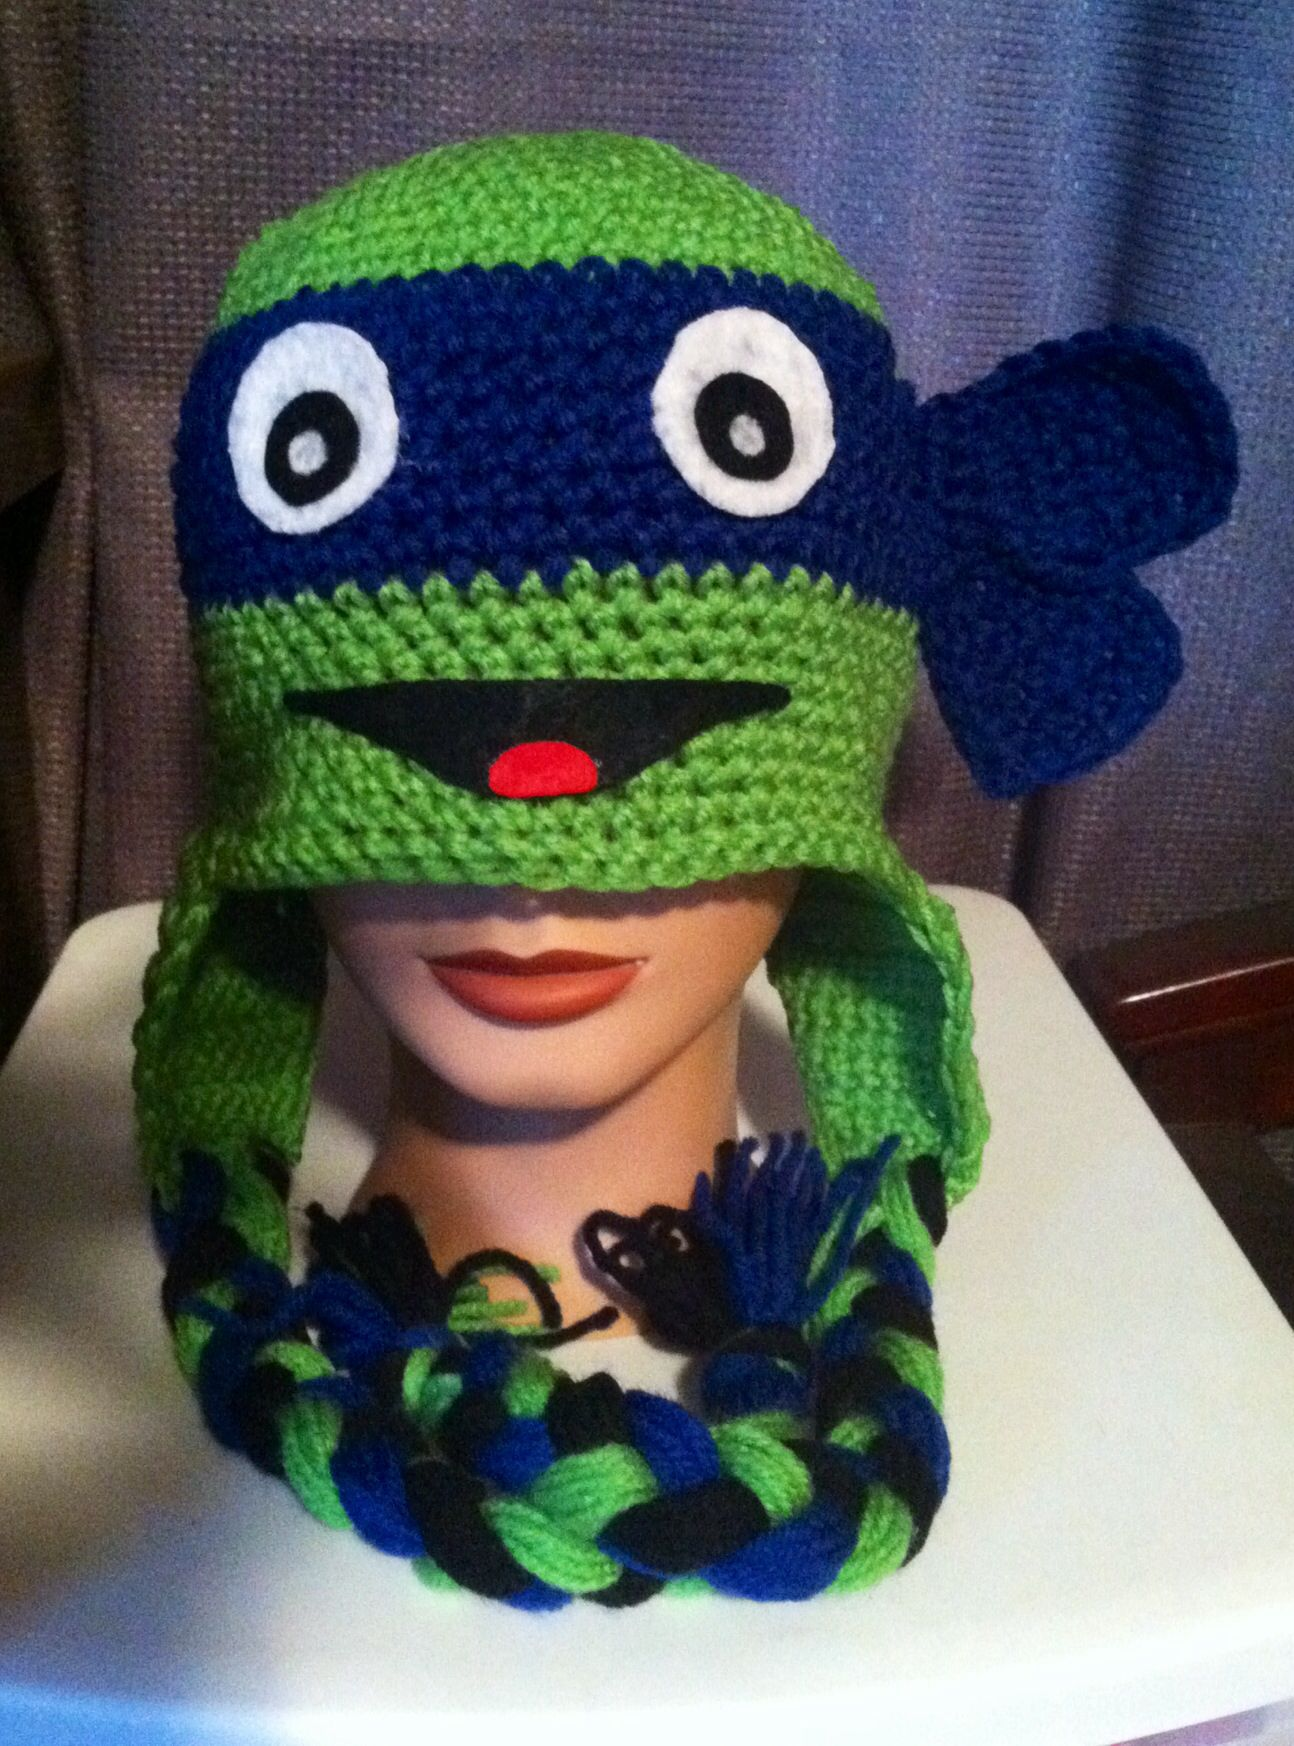 Crocheted Ninja Turtle Hat | My homemade items made by me ...